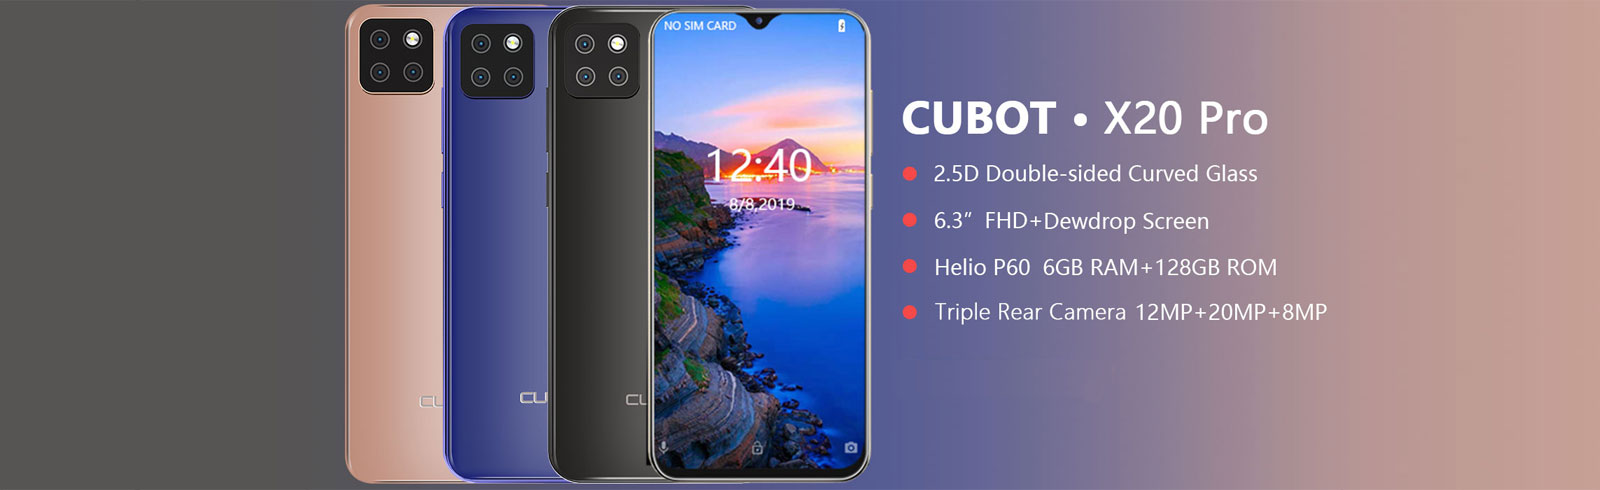 Cubot X20 Pro goes official with a 4000 mAh battery